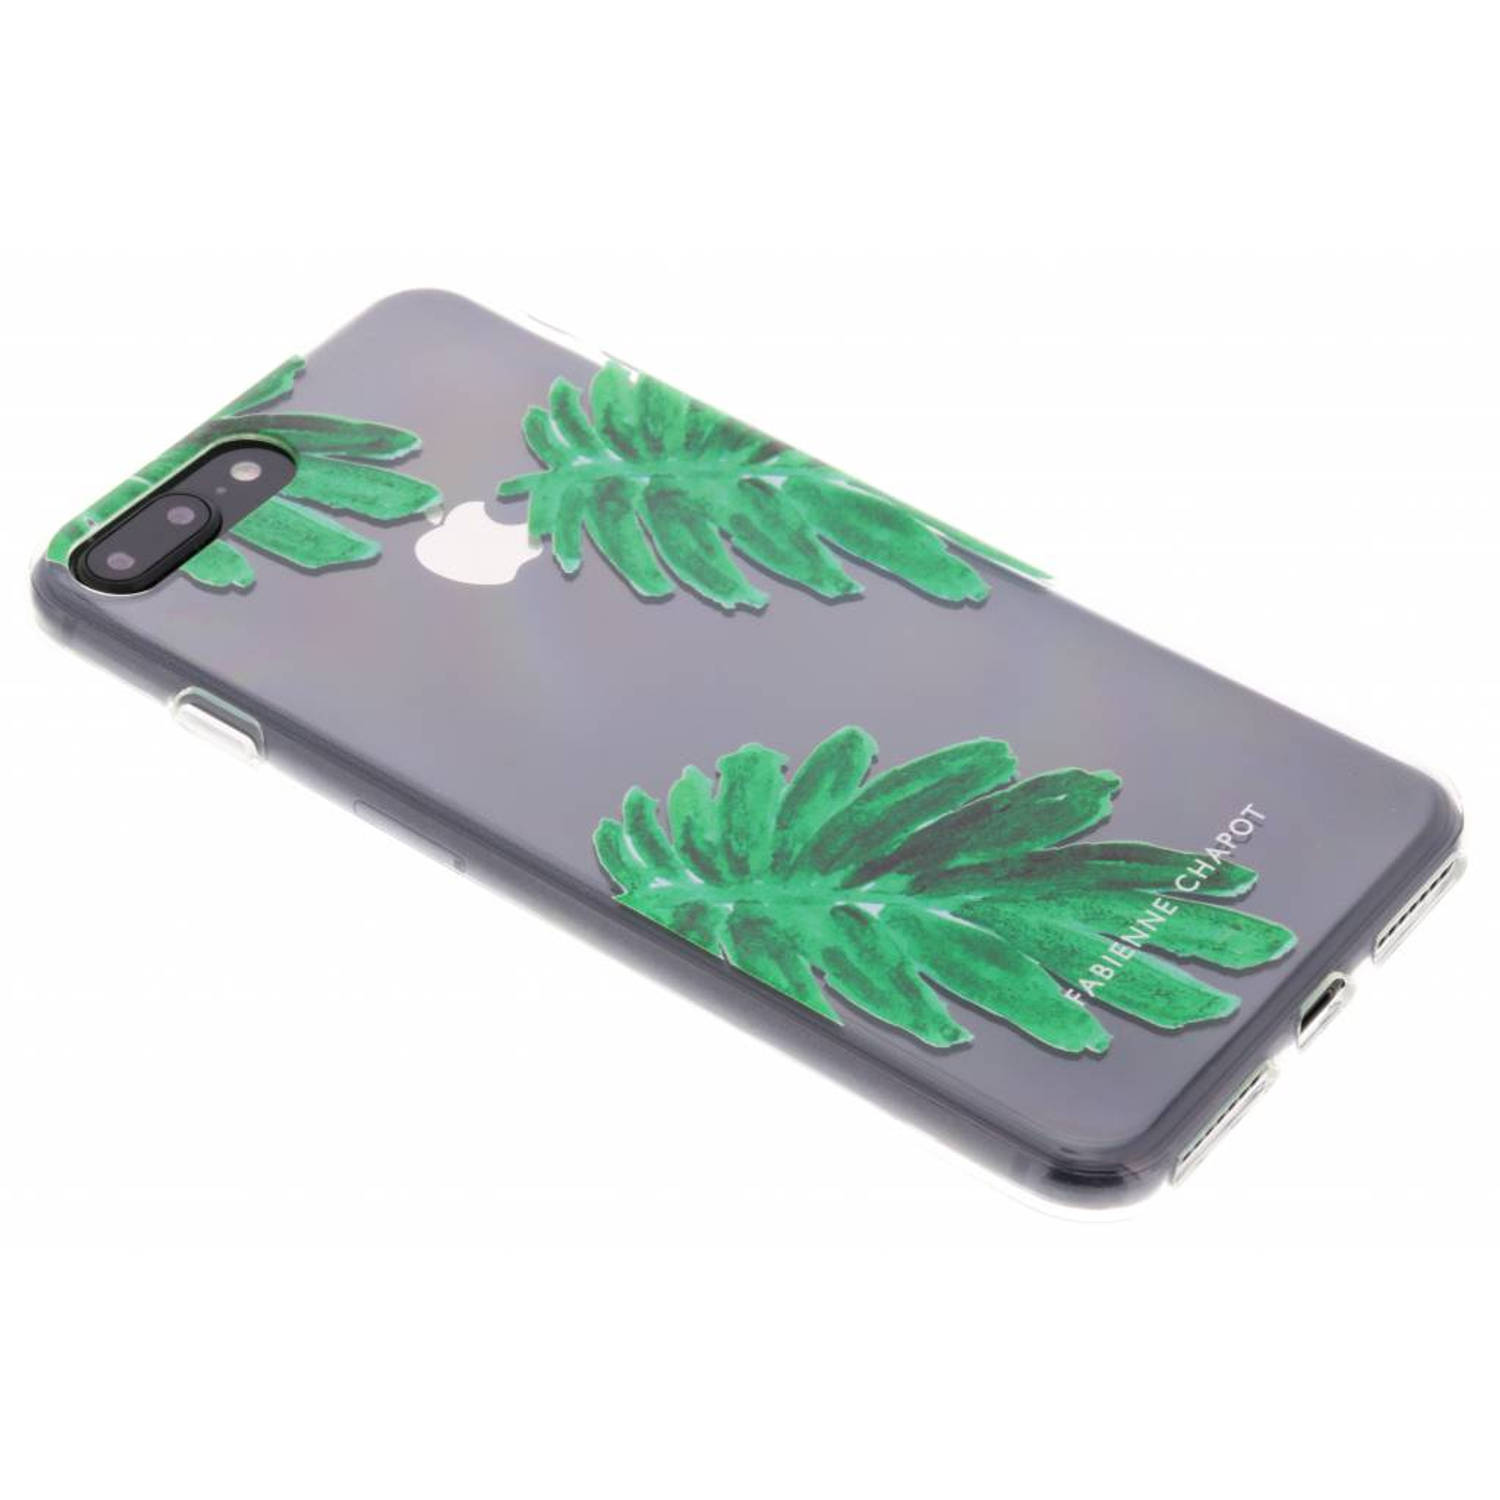 Citrus Leaf Softcase voor de iPhone 8 Plus / 7 Plus